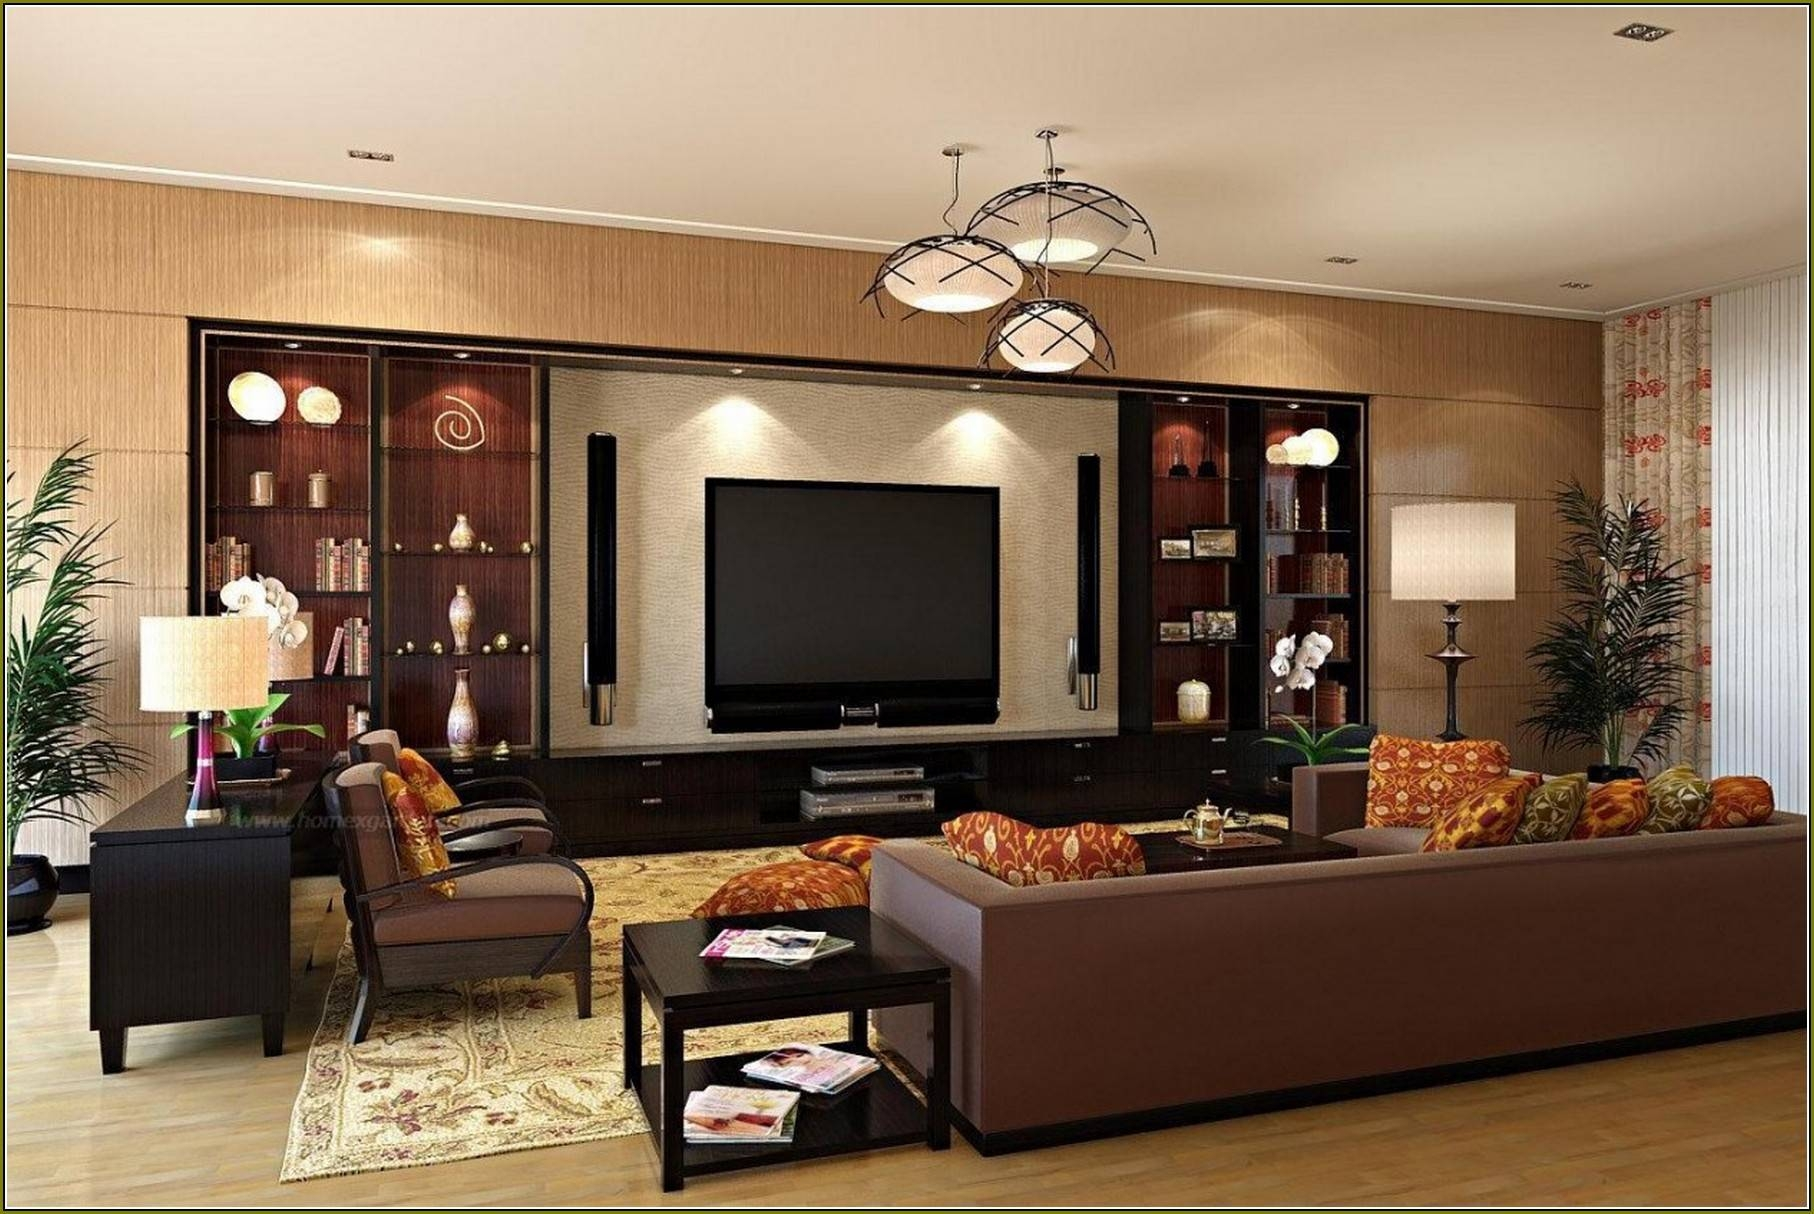 Modern Tv Cabinets For Flat Screens | Home Design Ideas in Contemporary Tv Cabinets For Flat Screens (Image 8 of 15)